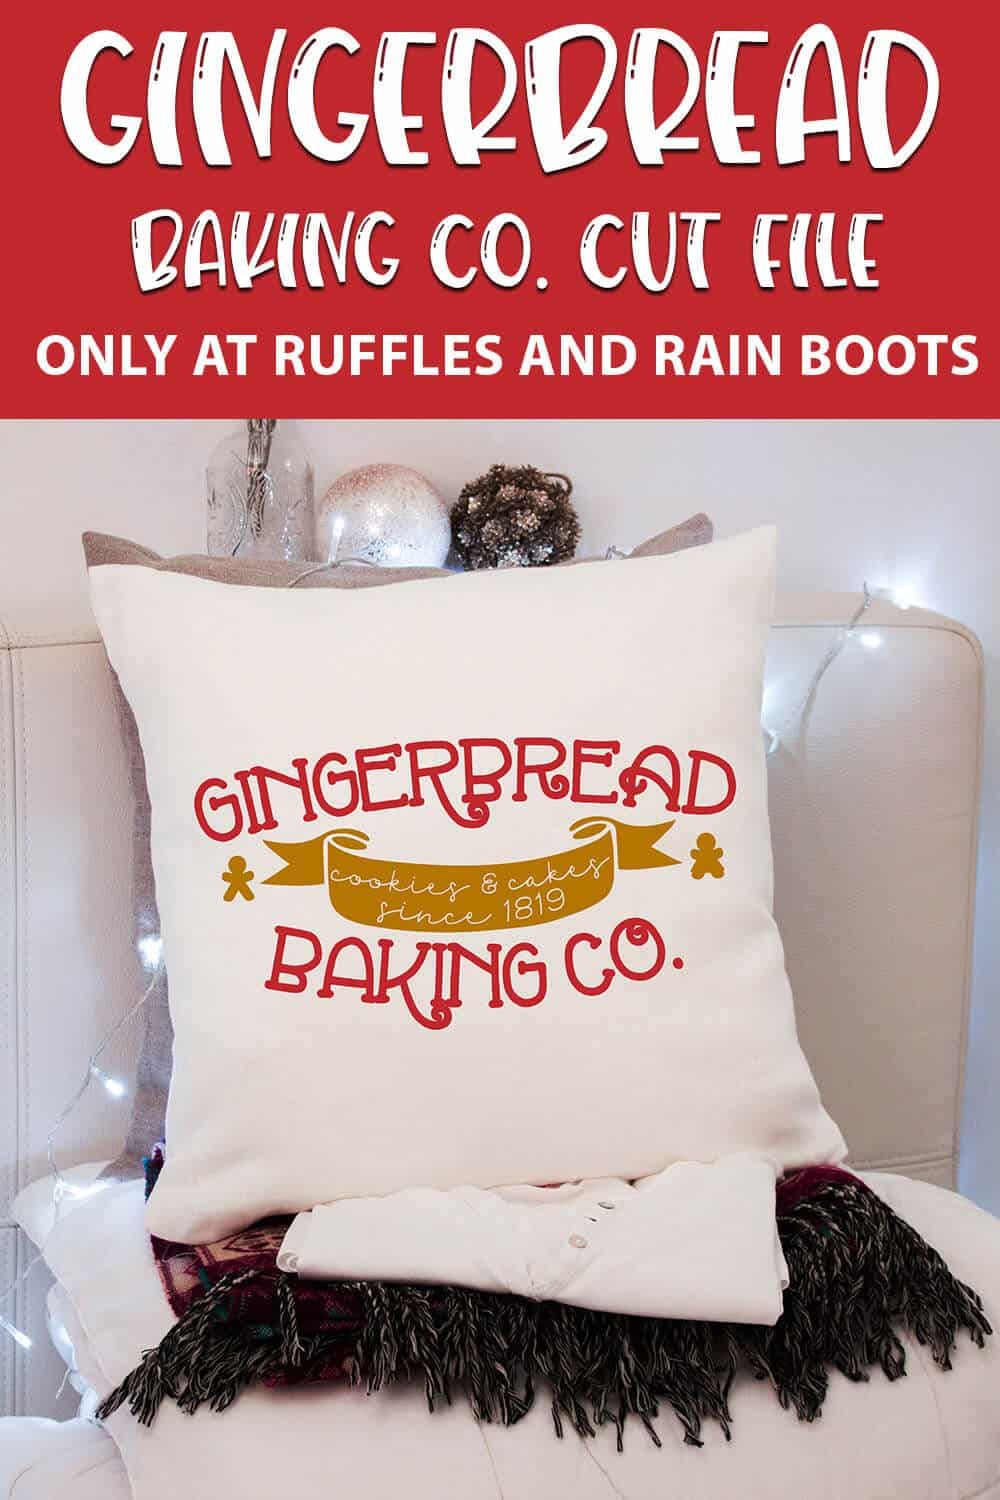 gingerbread baking company cut file set for cricut or silhouette with text which reads gingerbread baking co. cut file